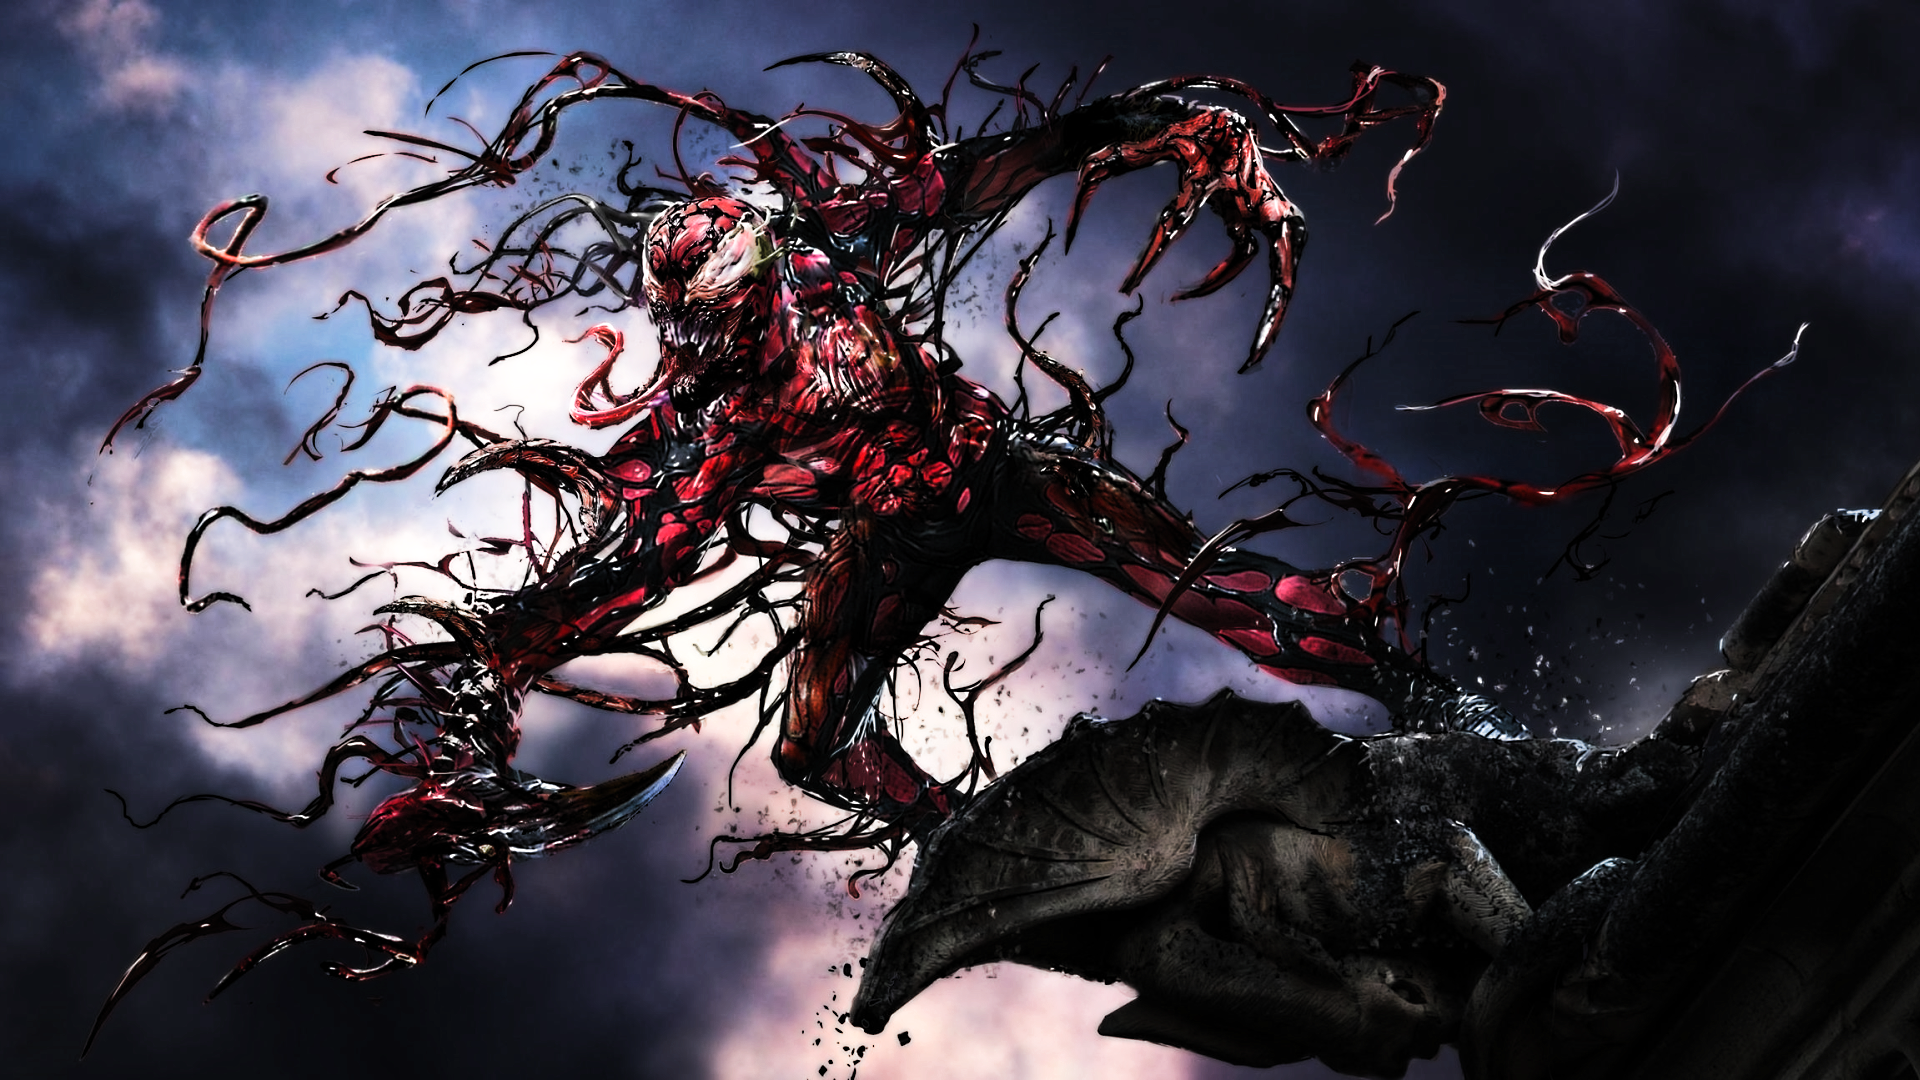 The Amazing Spider Man Carnage Official Poster A By ProfessorAdagio